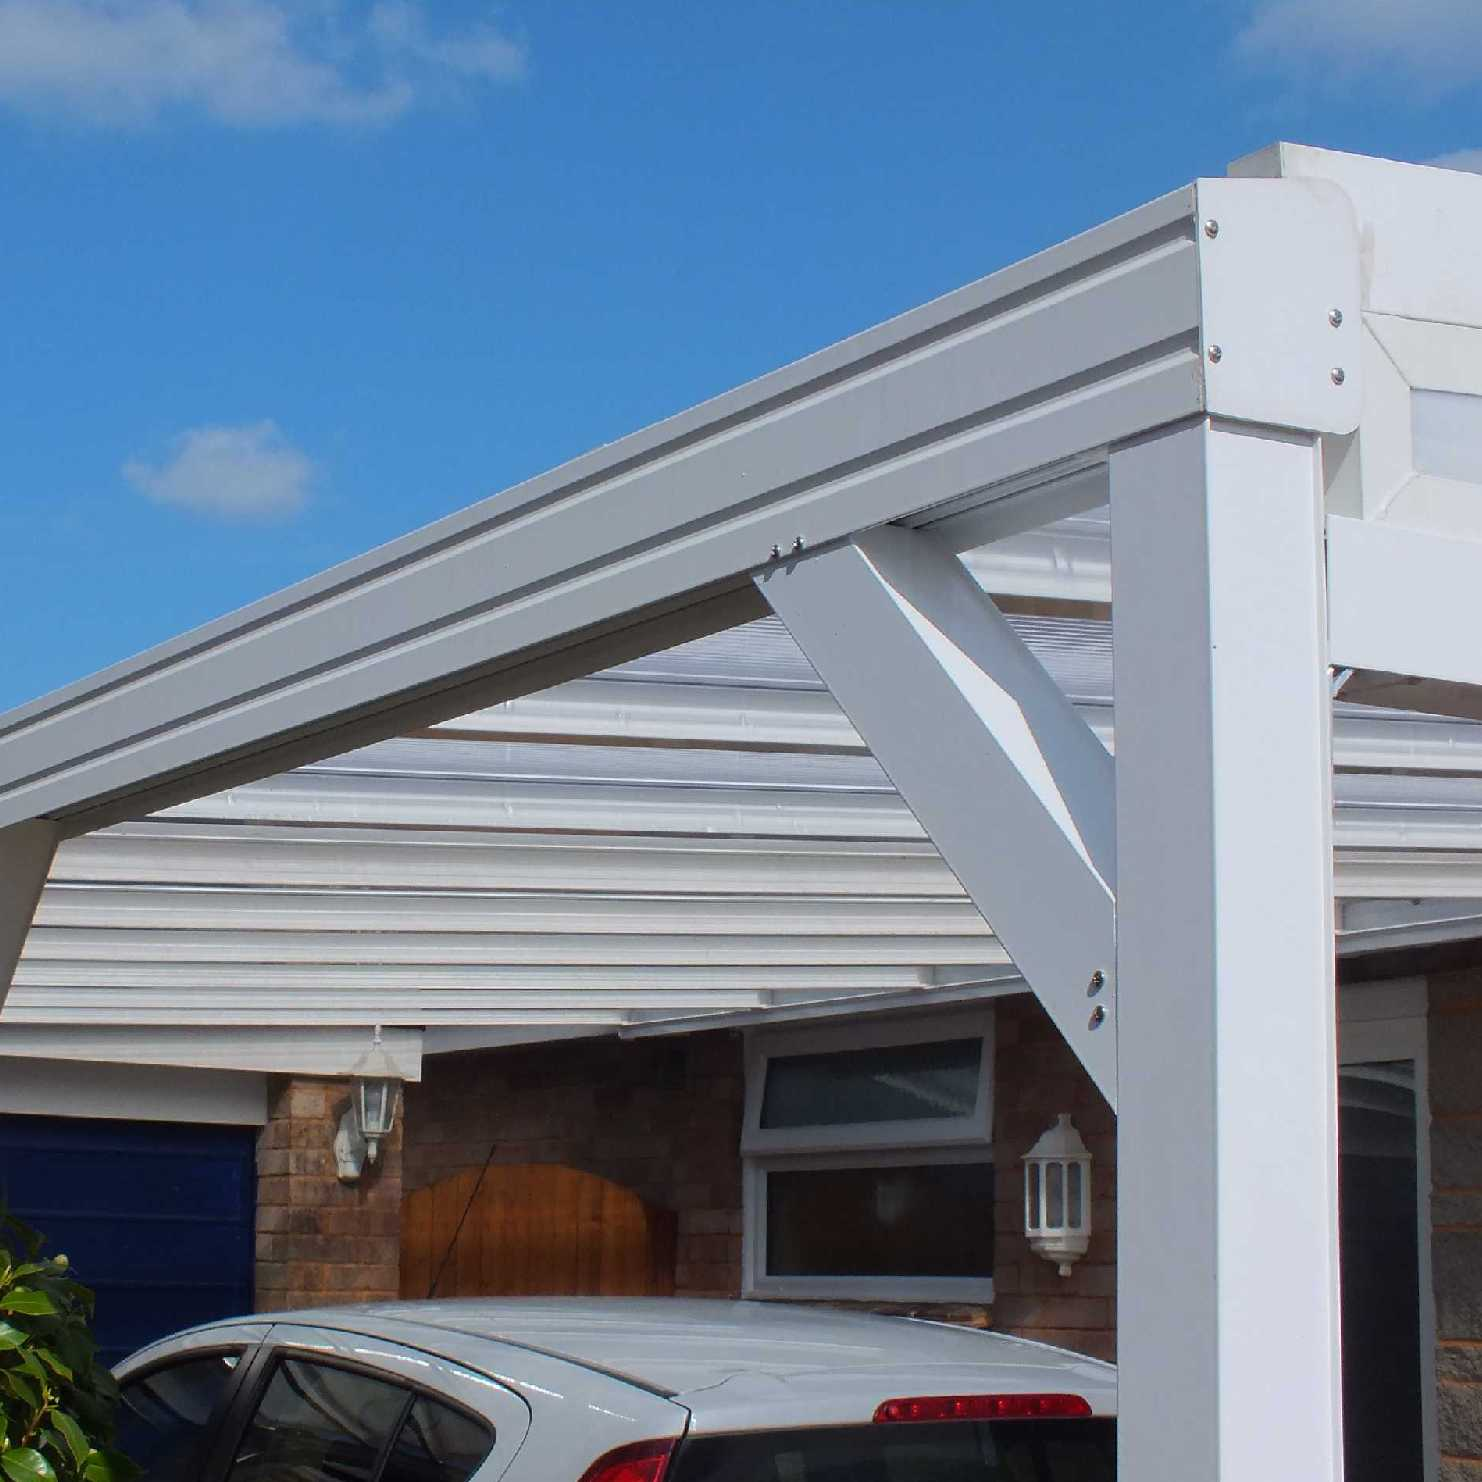 Great deals on Omega Smart White Lean-To Canopy with 16mm Polycarbonate Glazing - 3.1m (W) x 3.0m (P), (2) Supporting Posts